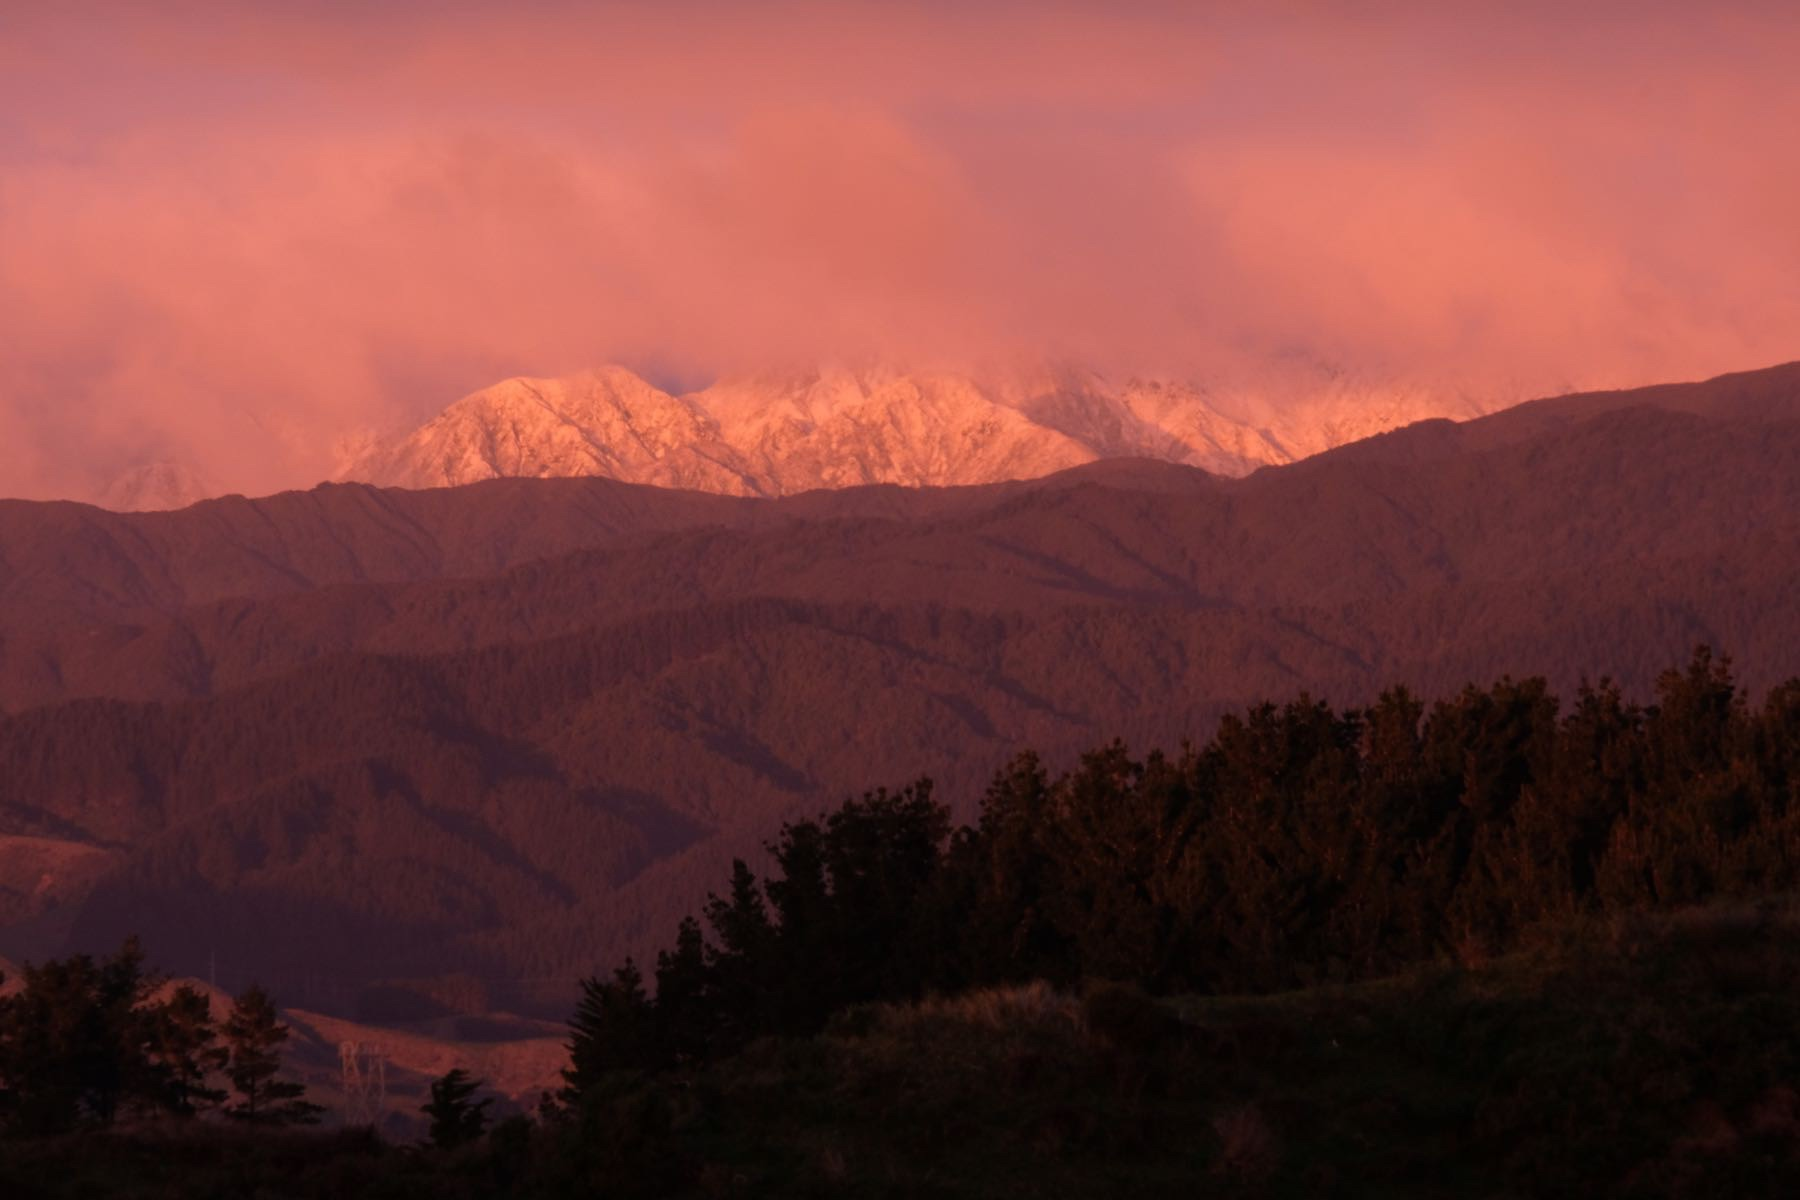 An orange sunset photo of a dusting of snow on the mountain peaks.